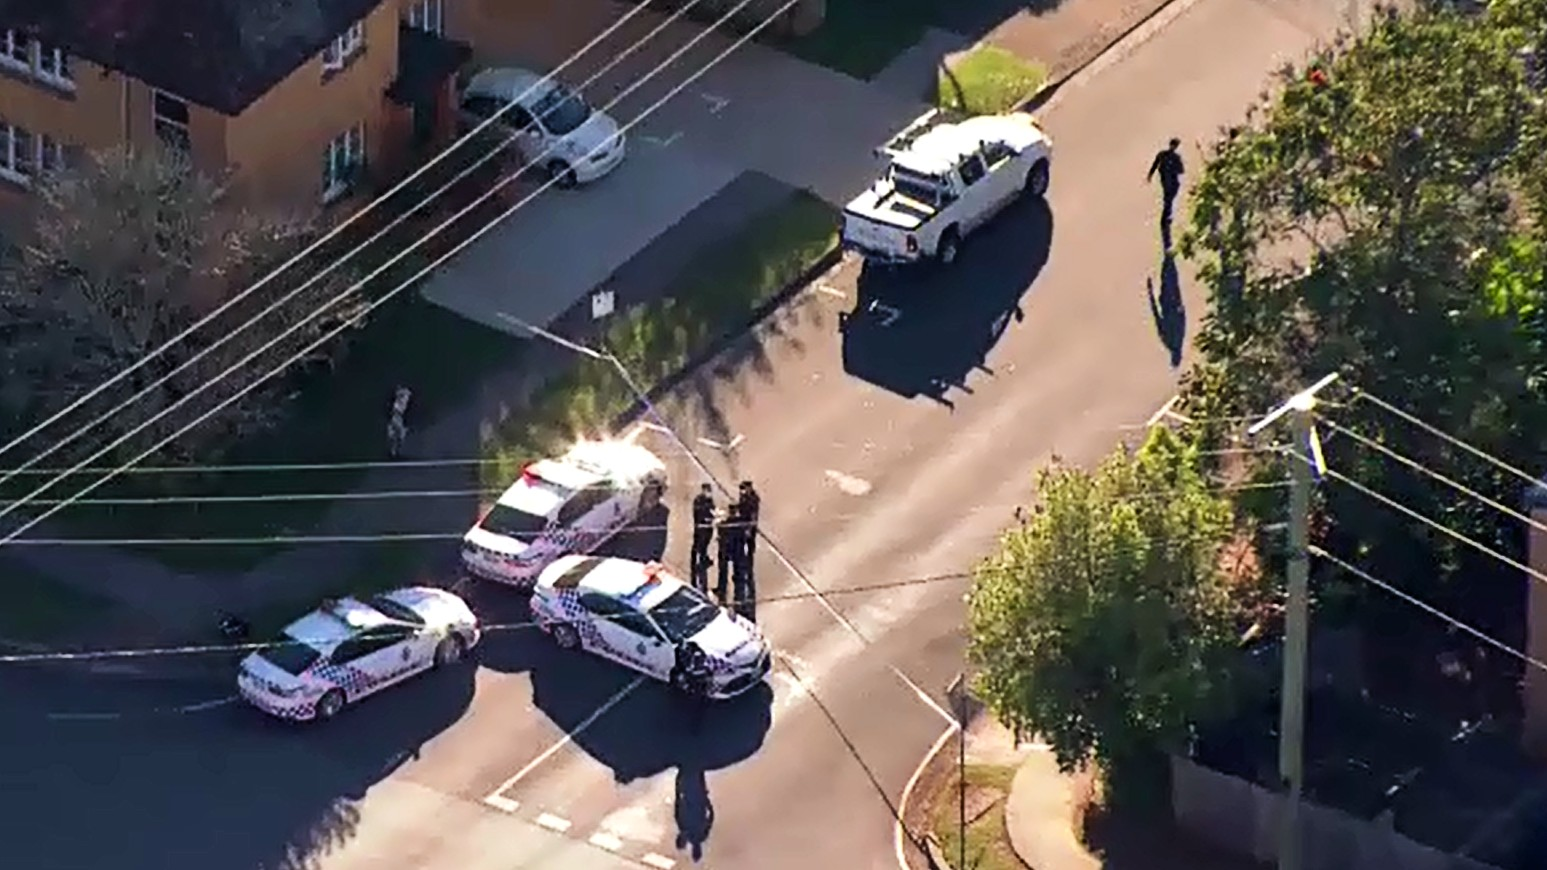 Sunshine Coast Criminal Investigation Branch acting Detective Inspector Phil Hurst said that police are currently trying to understand what led to the man's death.